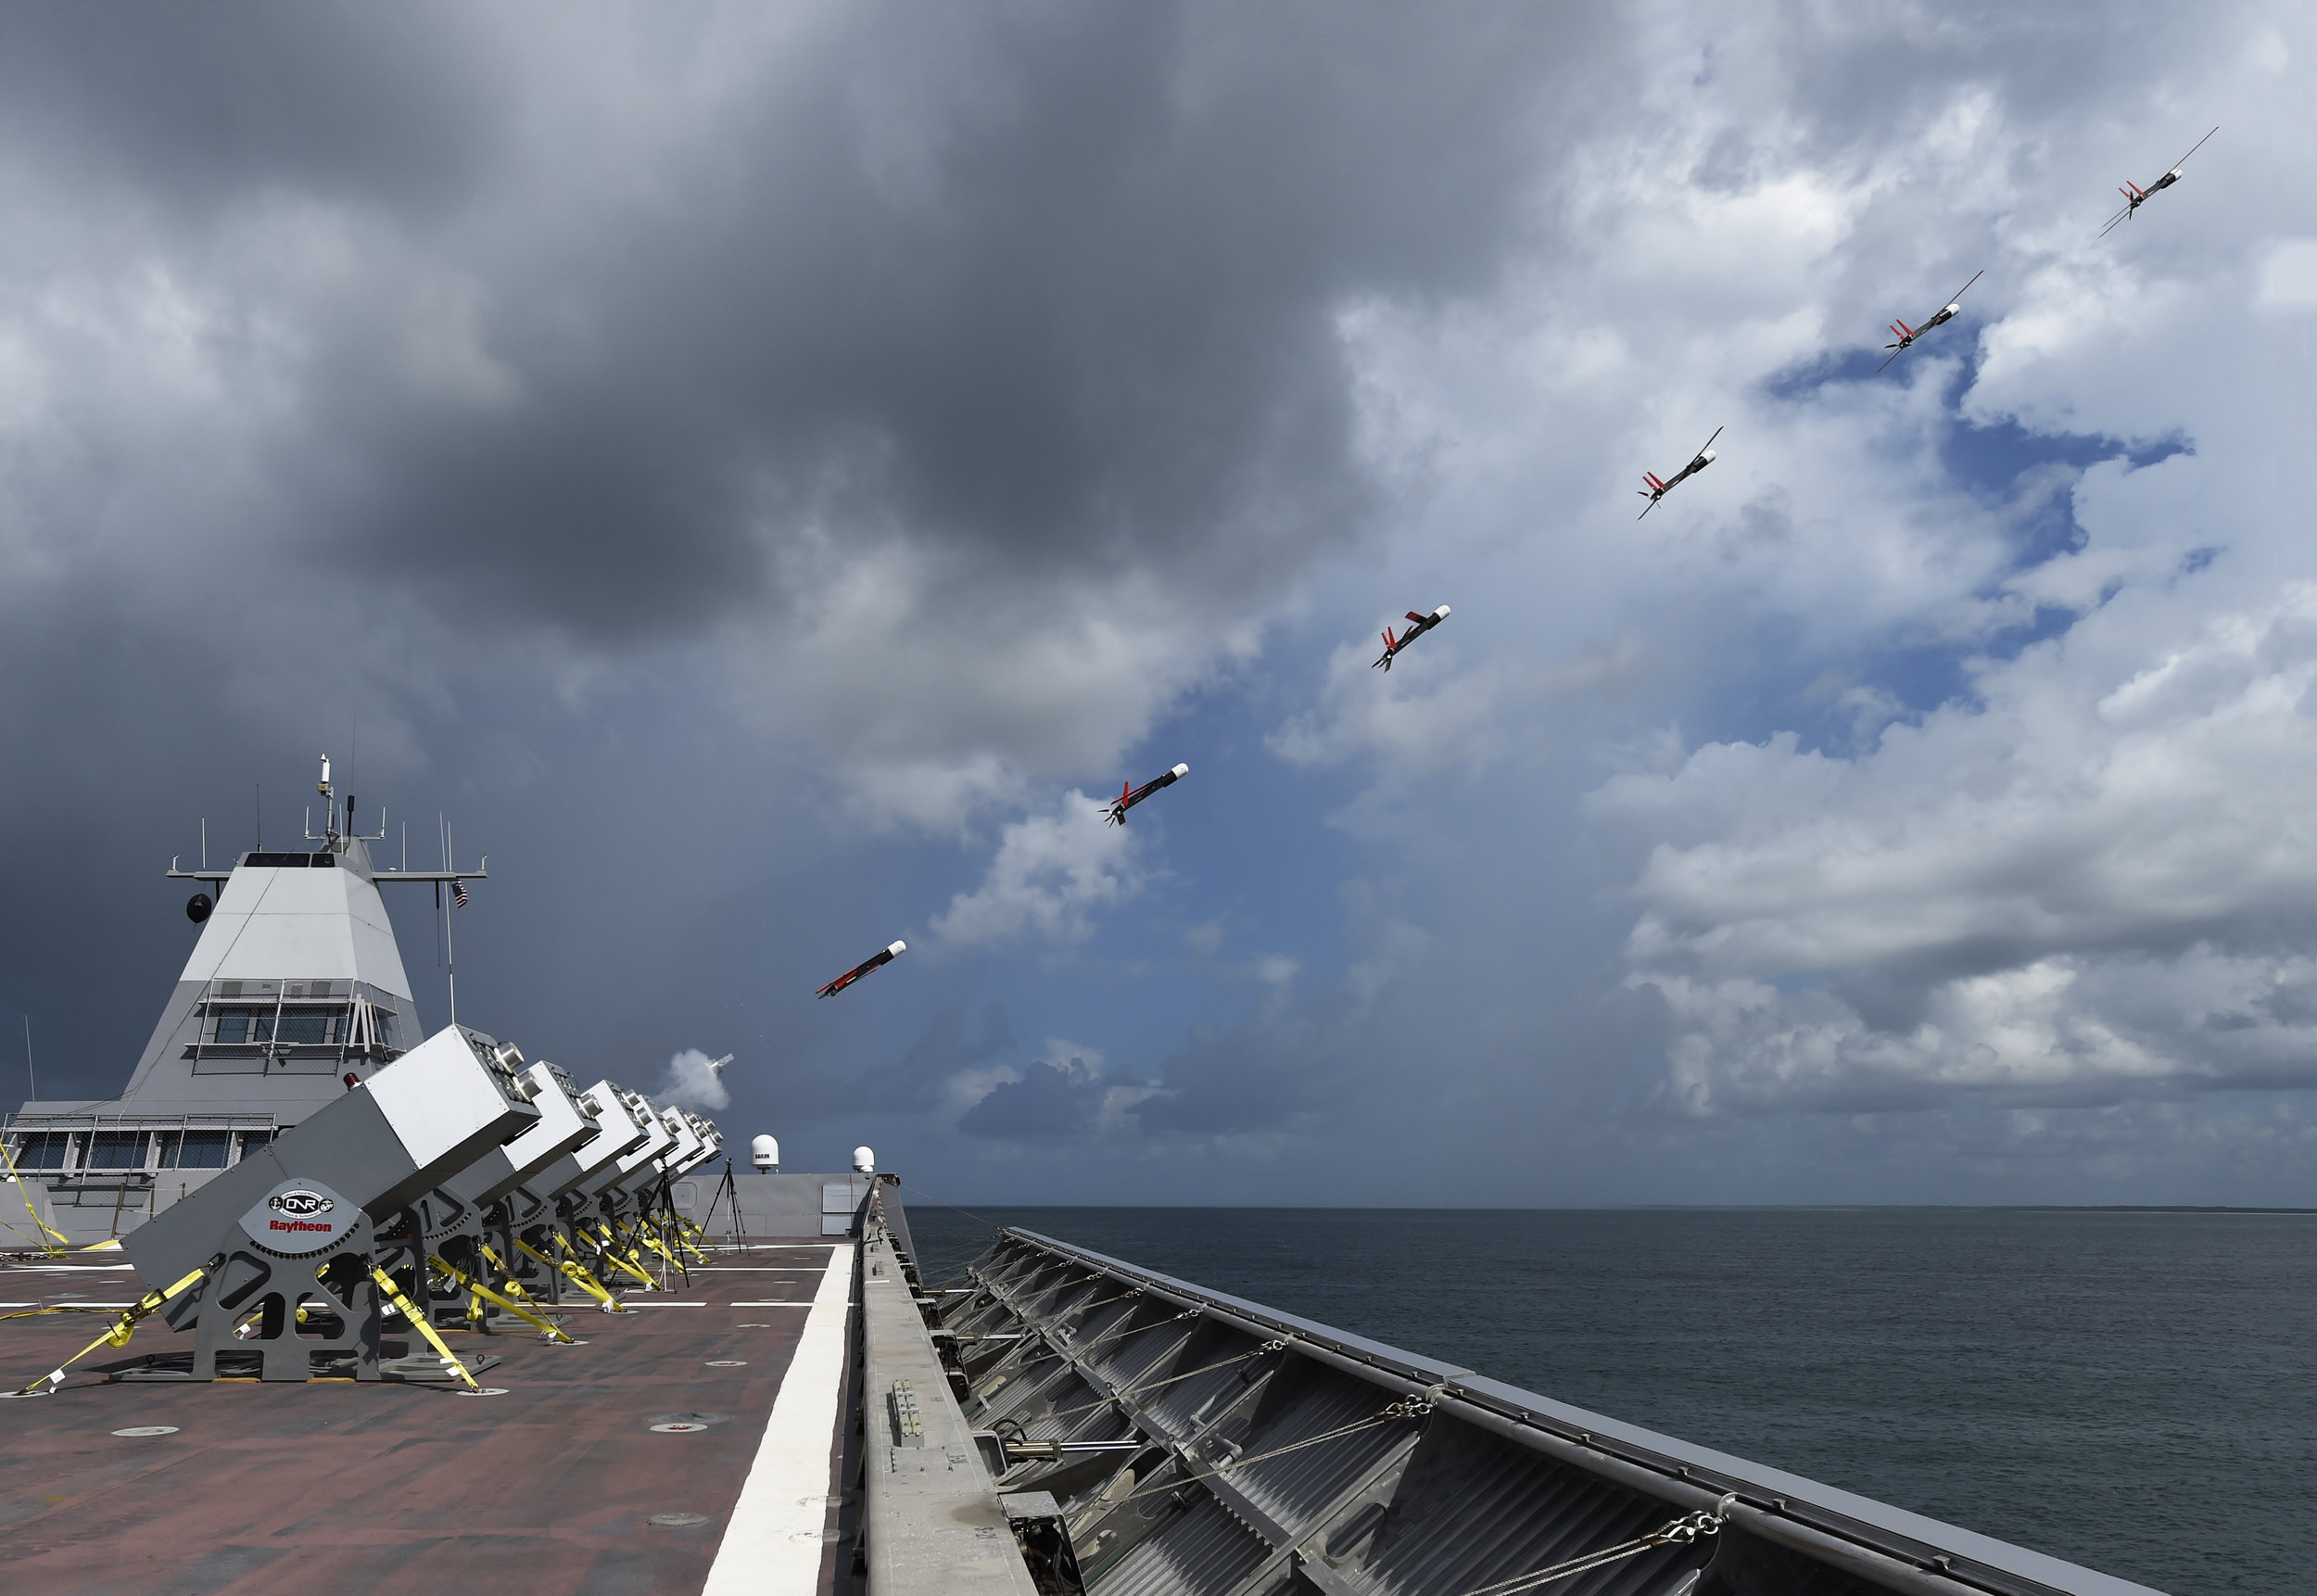 GULF OF MEXICO - A composite photograph shows Coyote unmanned air vehicles (UAVs) being launched in rapid succession from the deck of Sea Fighter (FSF 1) during an at-sea demonstration of the Office of Naval Research Low-cost UAV Swarming Technology (LOCUST) program.